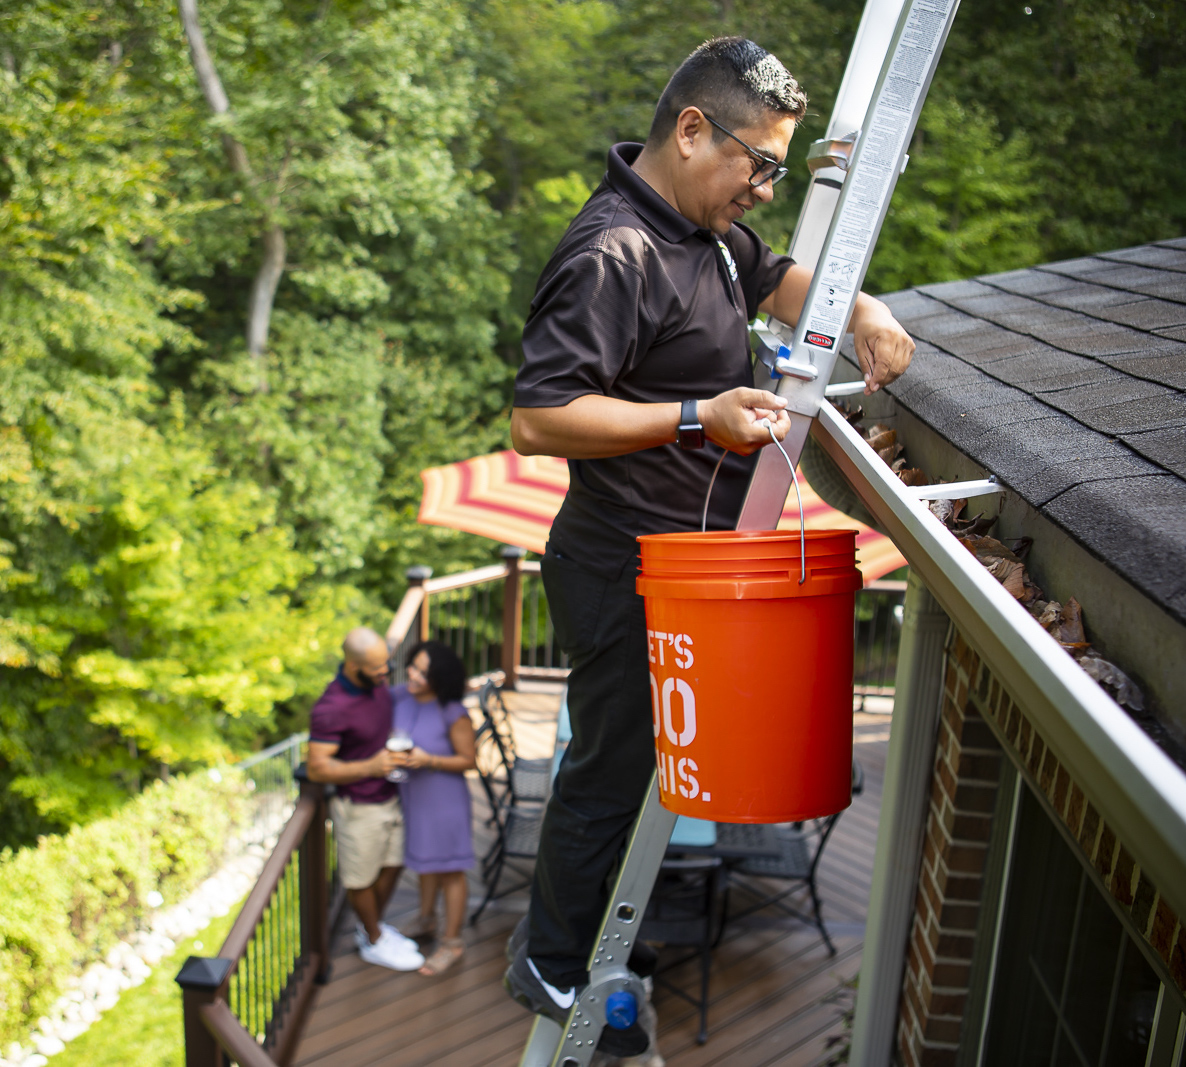 Gutter cleaning services in Virginia